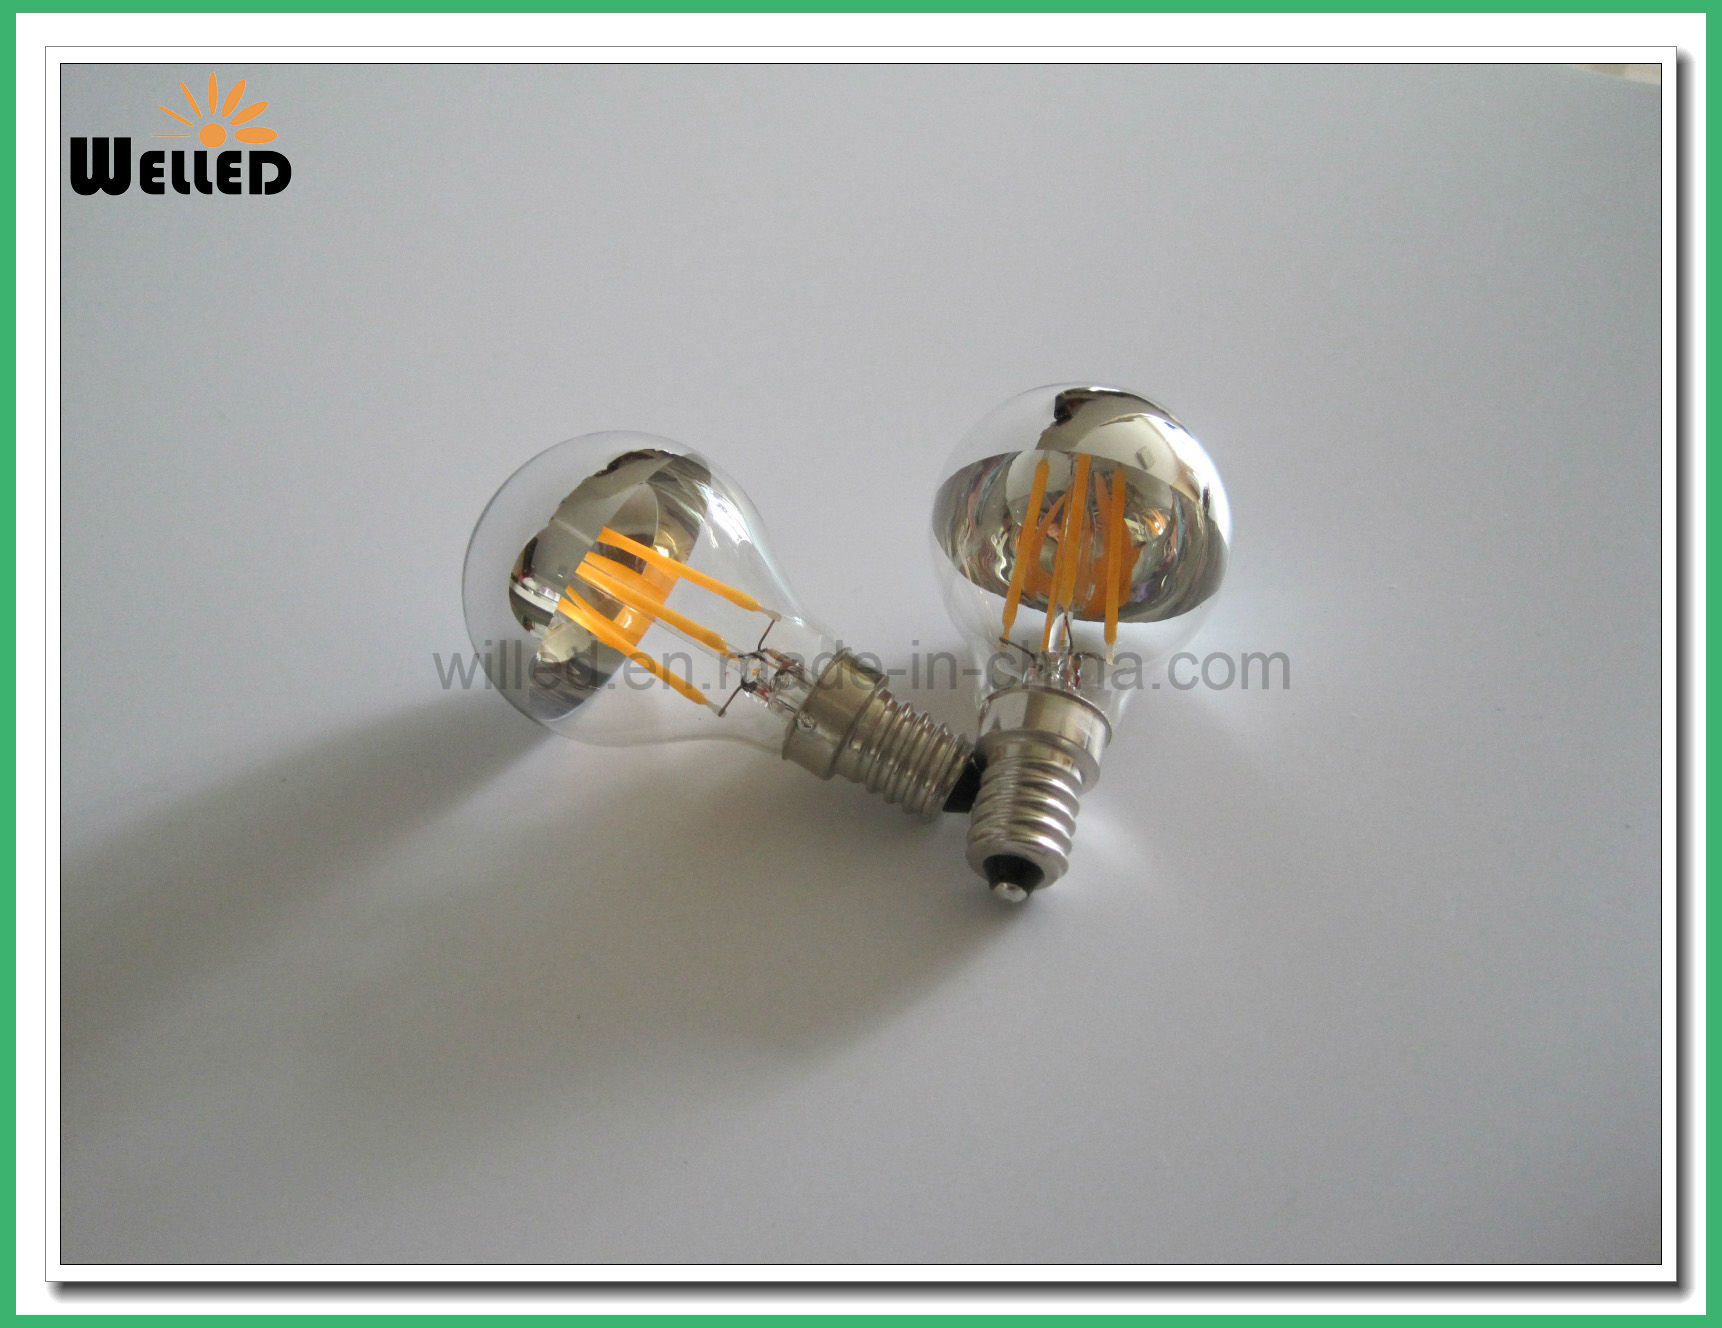 Mirror A60 E27 LED Filament Bulb Light 4W 6W 8W Dimmable 220V 110V